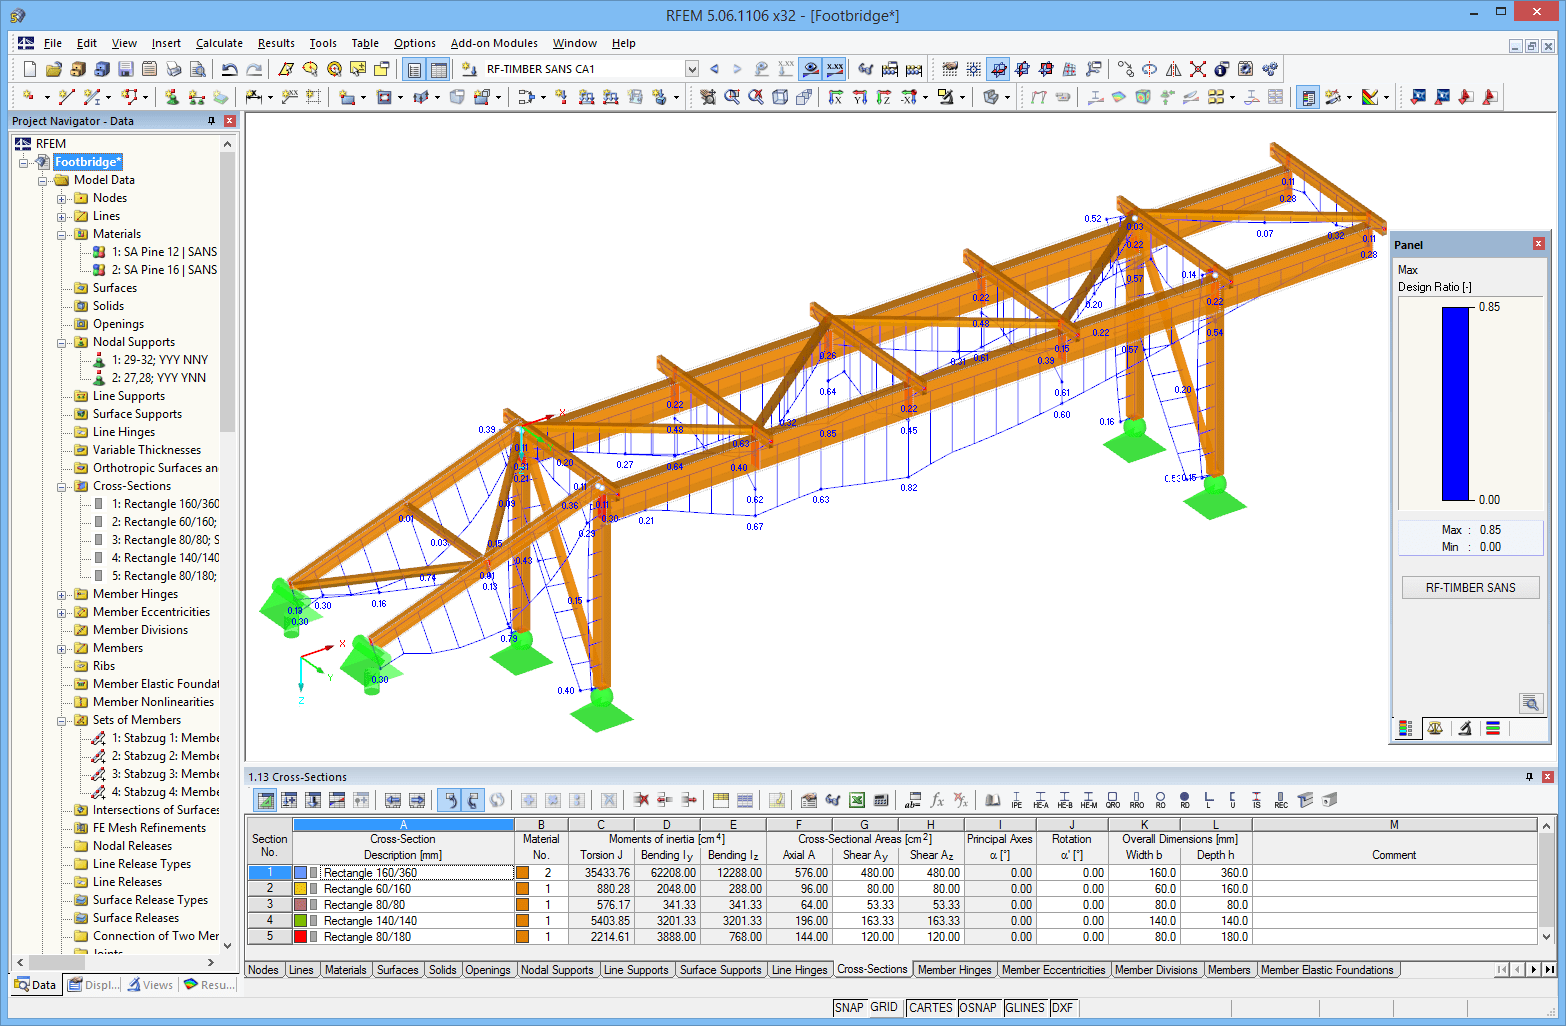 Graphical representation of RF-/TIMBER SANS design results in RFEM